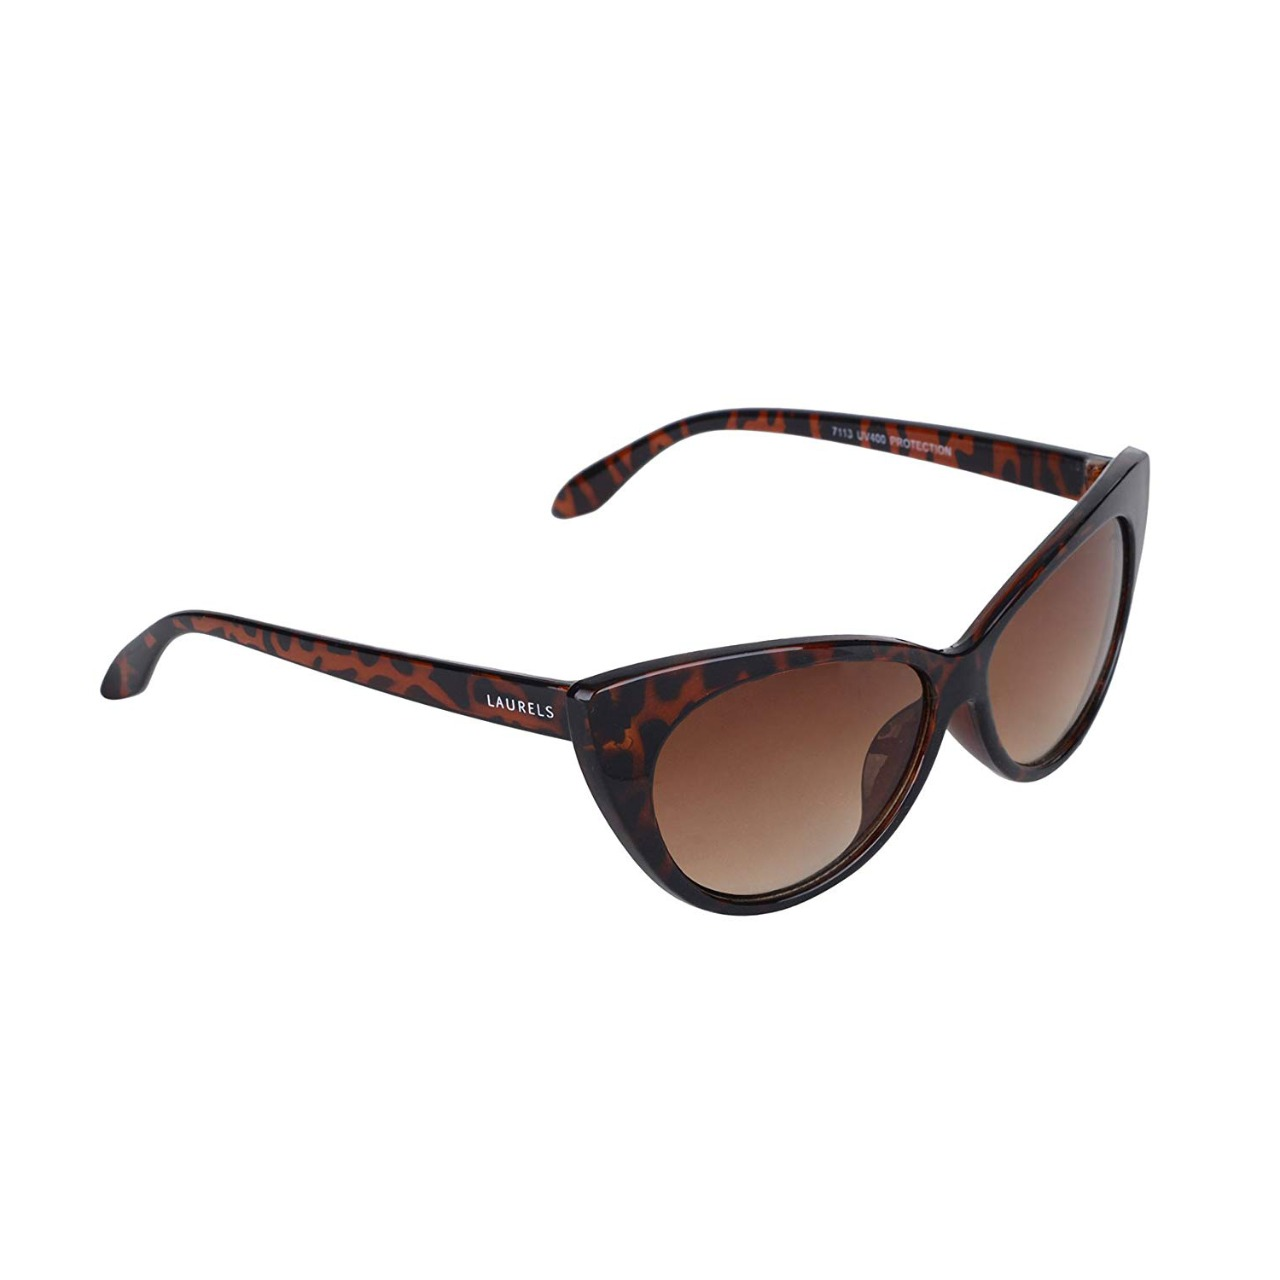 Walrus Black Polycarbonate Round Frames Sunglass For Men